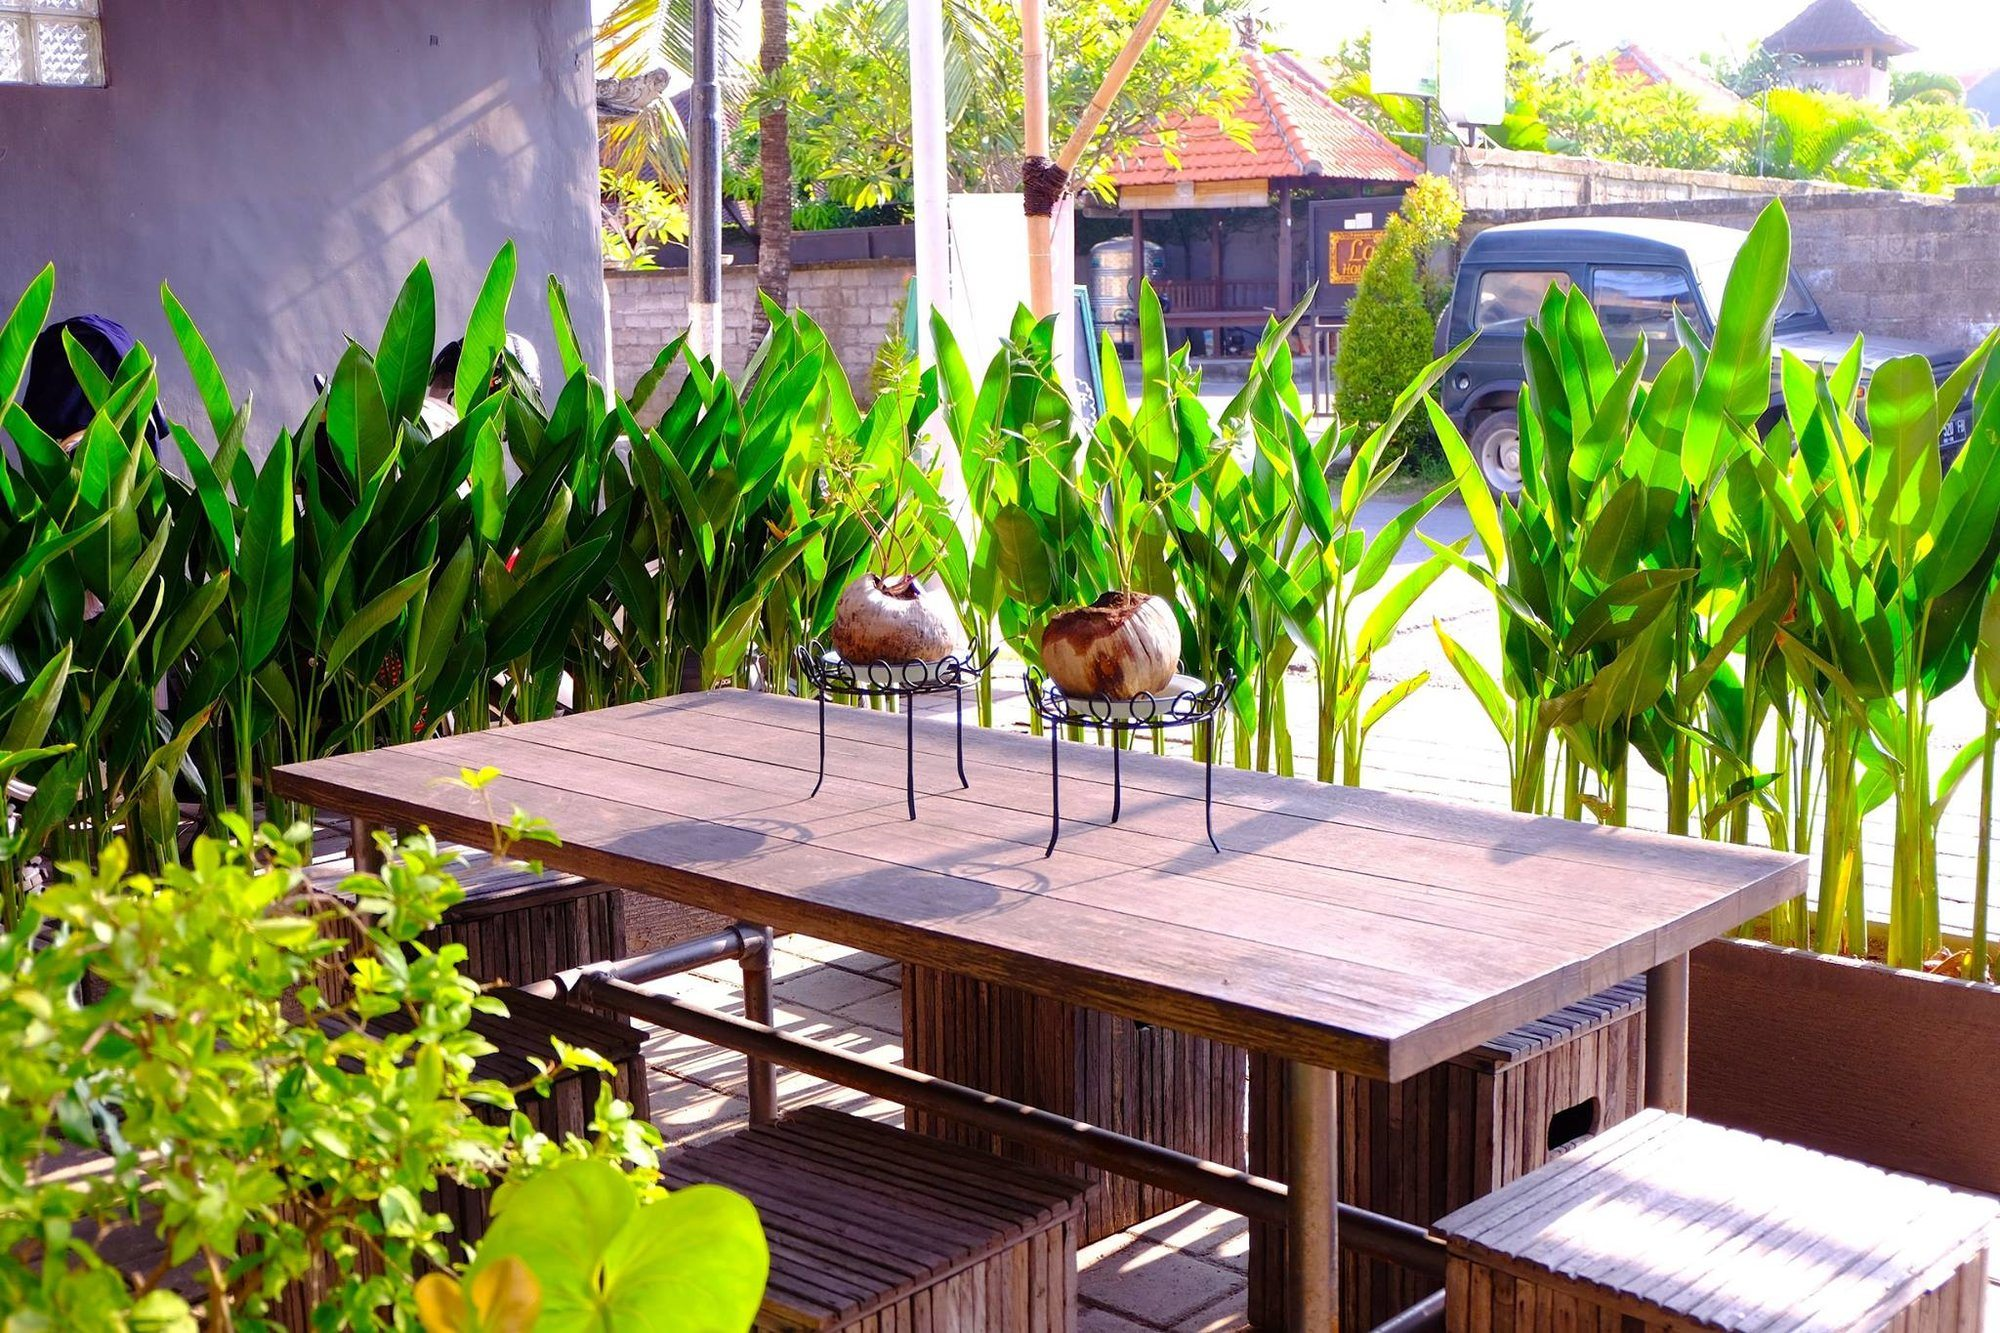 10 Restaurants You Have to Try in Kerobokan | Ministry of Villas